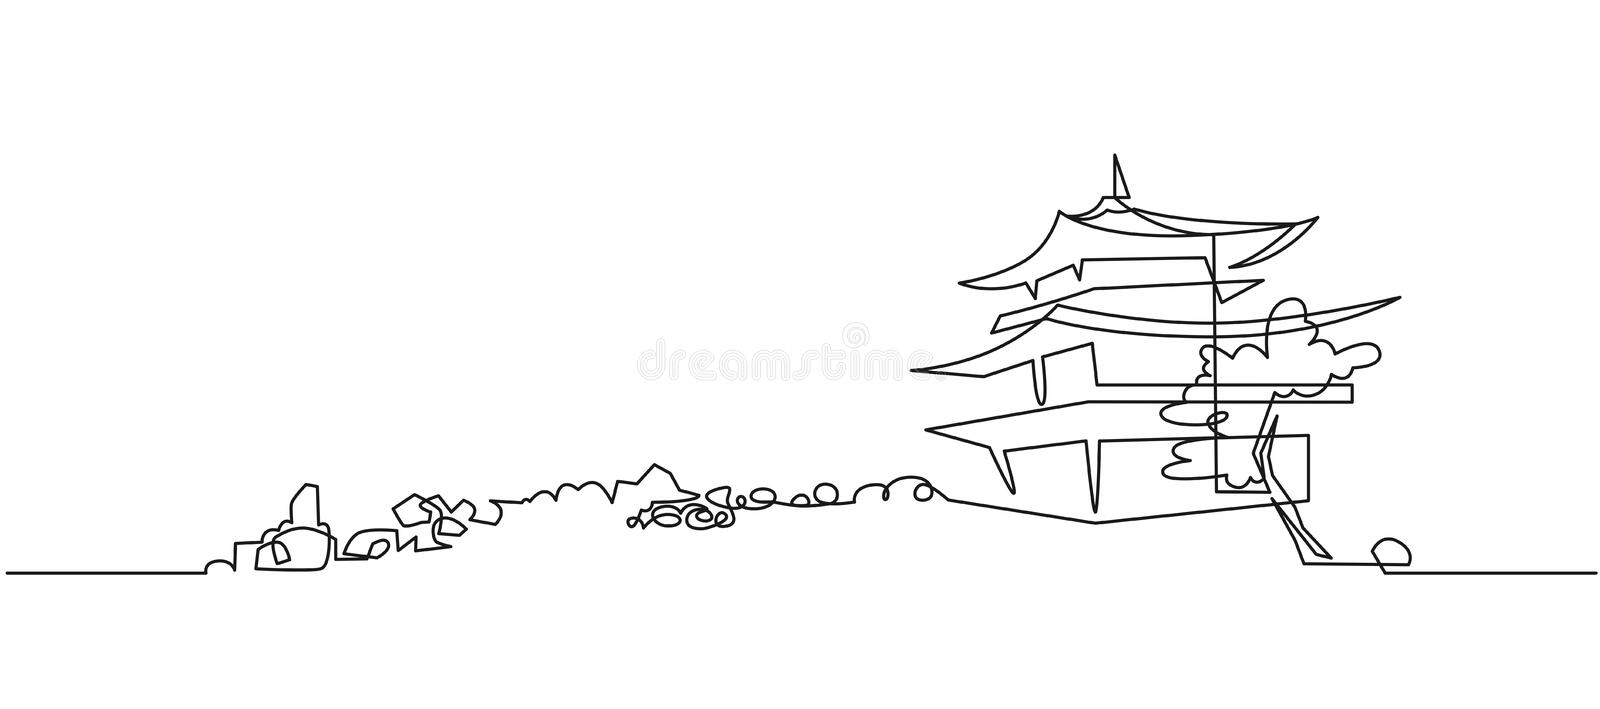 Japanese Buddhist temple continuous one line vector drawing royalty free illustration